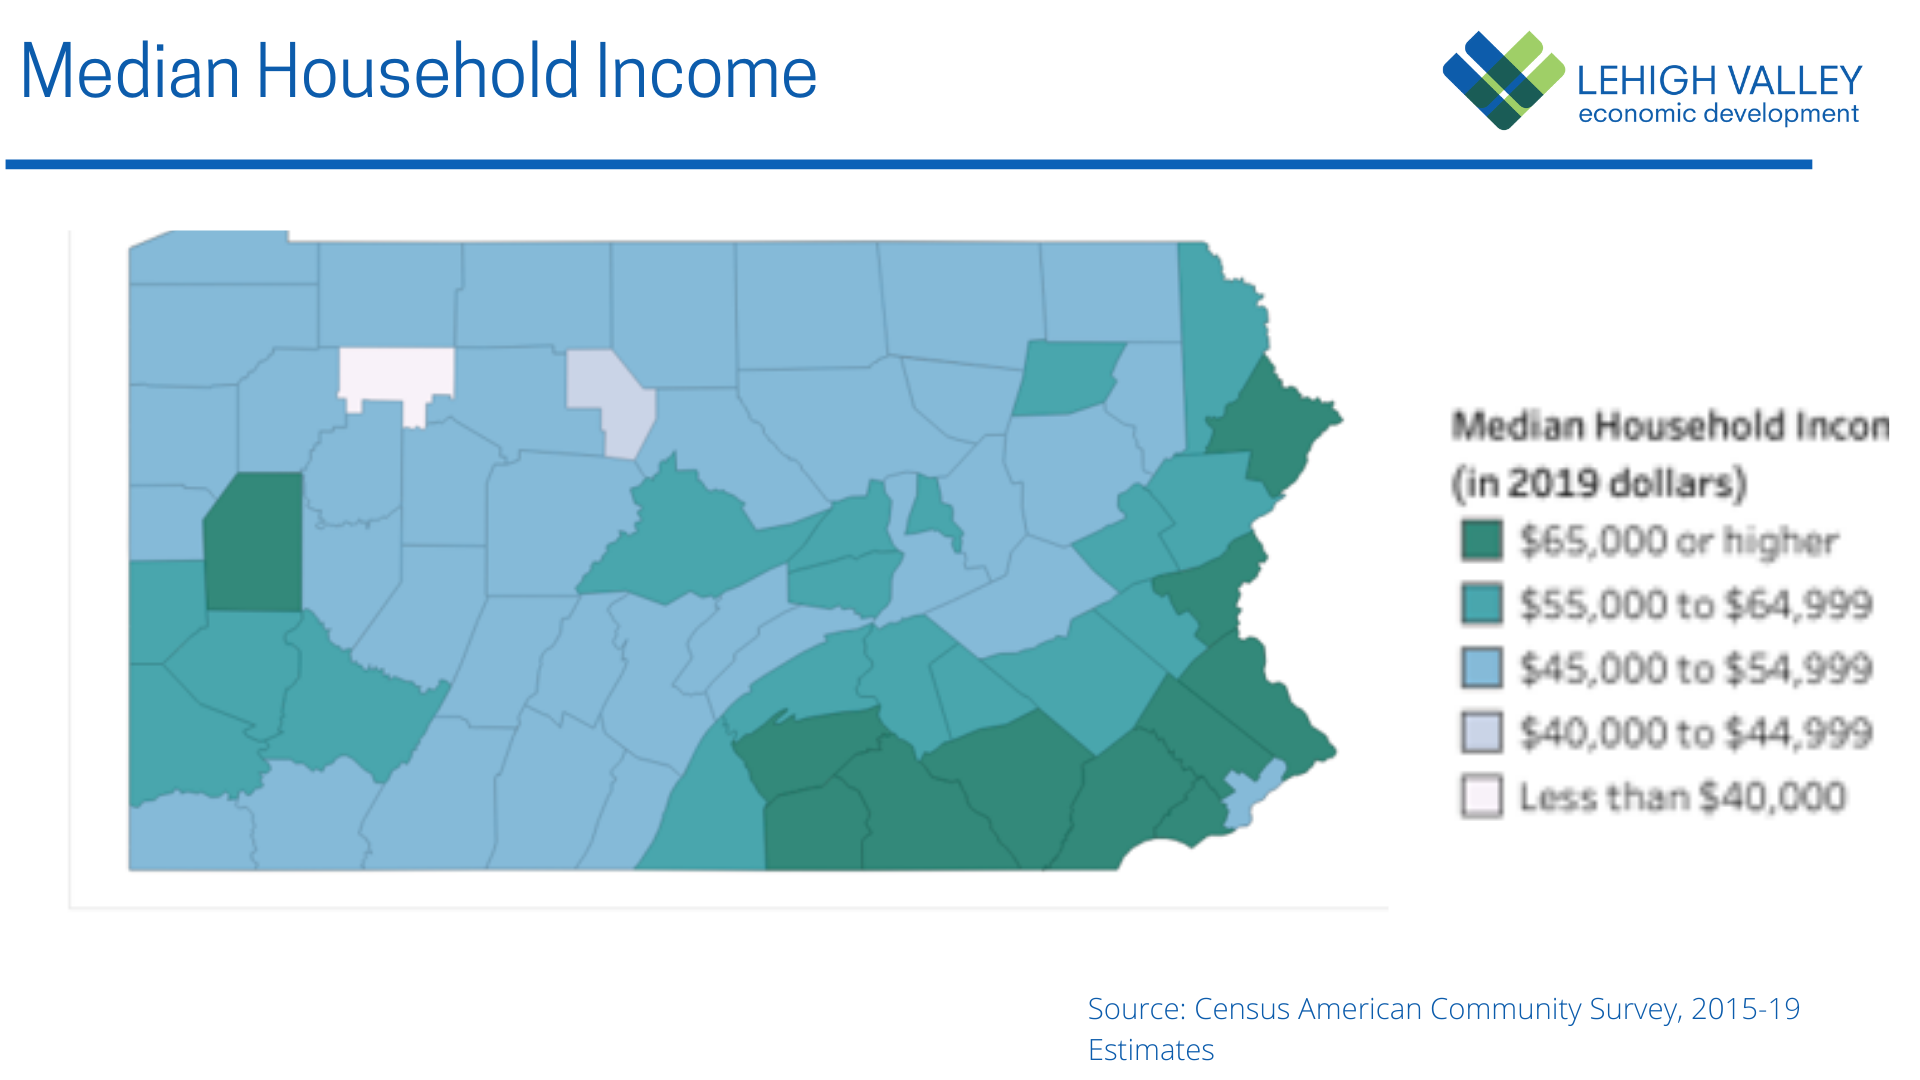 Lehigh Valley Median Household Income